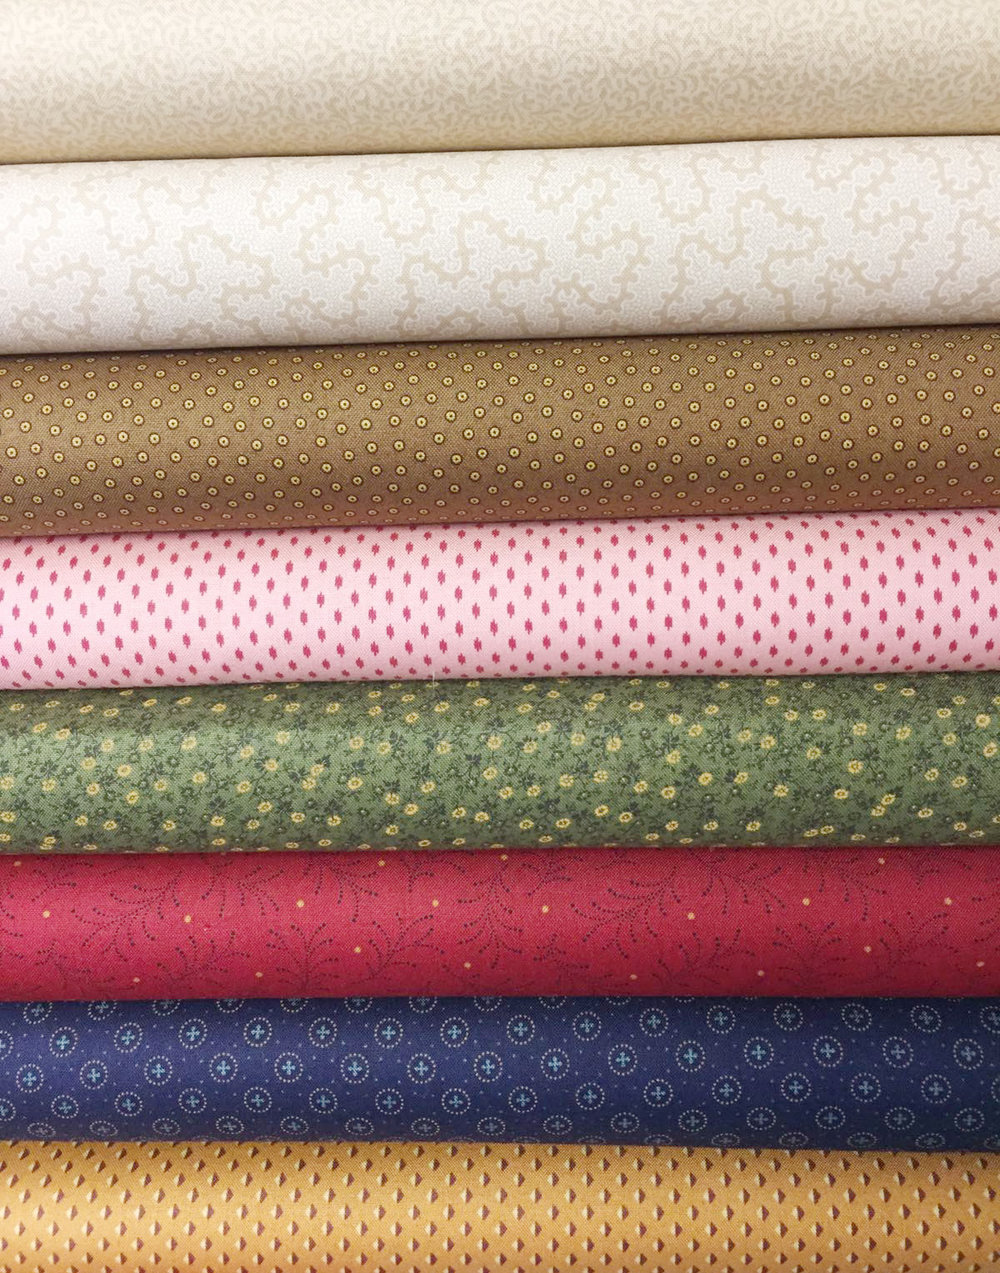 The new fabrics that will make up your Harriet Tubman quilt